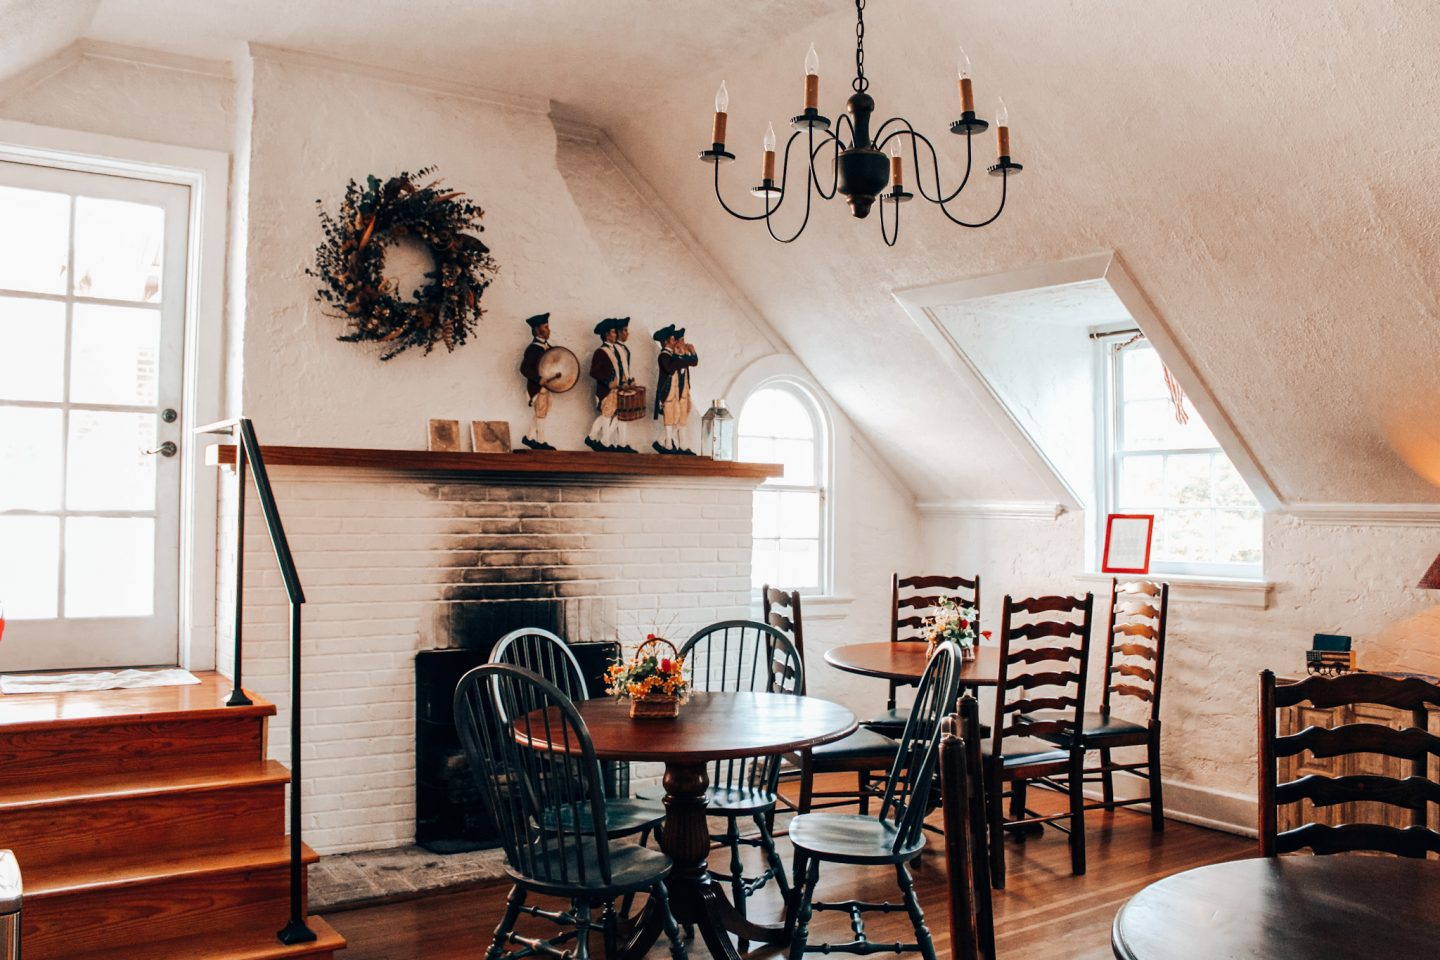 Staying at Fife and Drum Inn is one of the top things to do in Williamsburg, VA